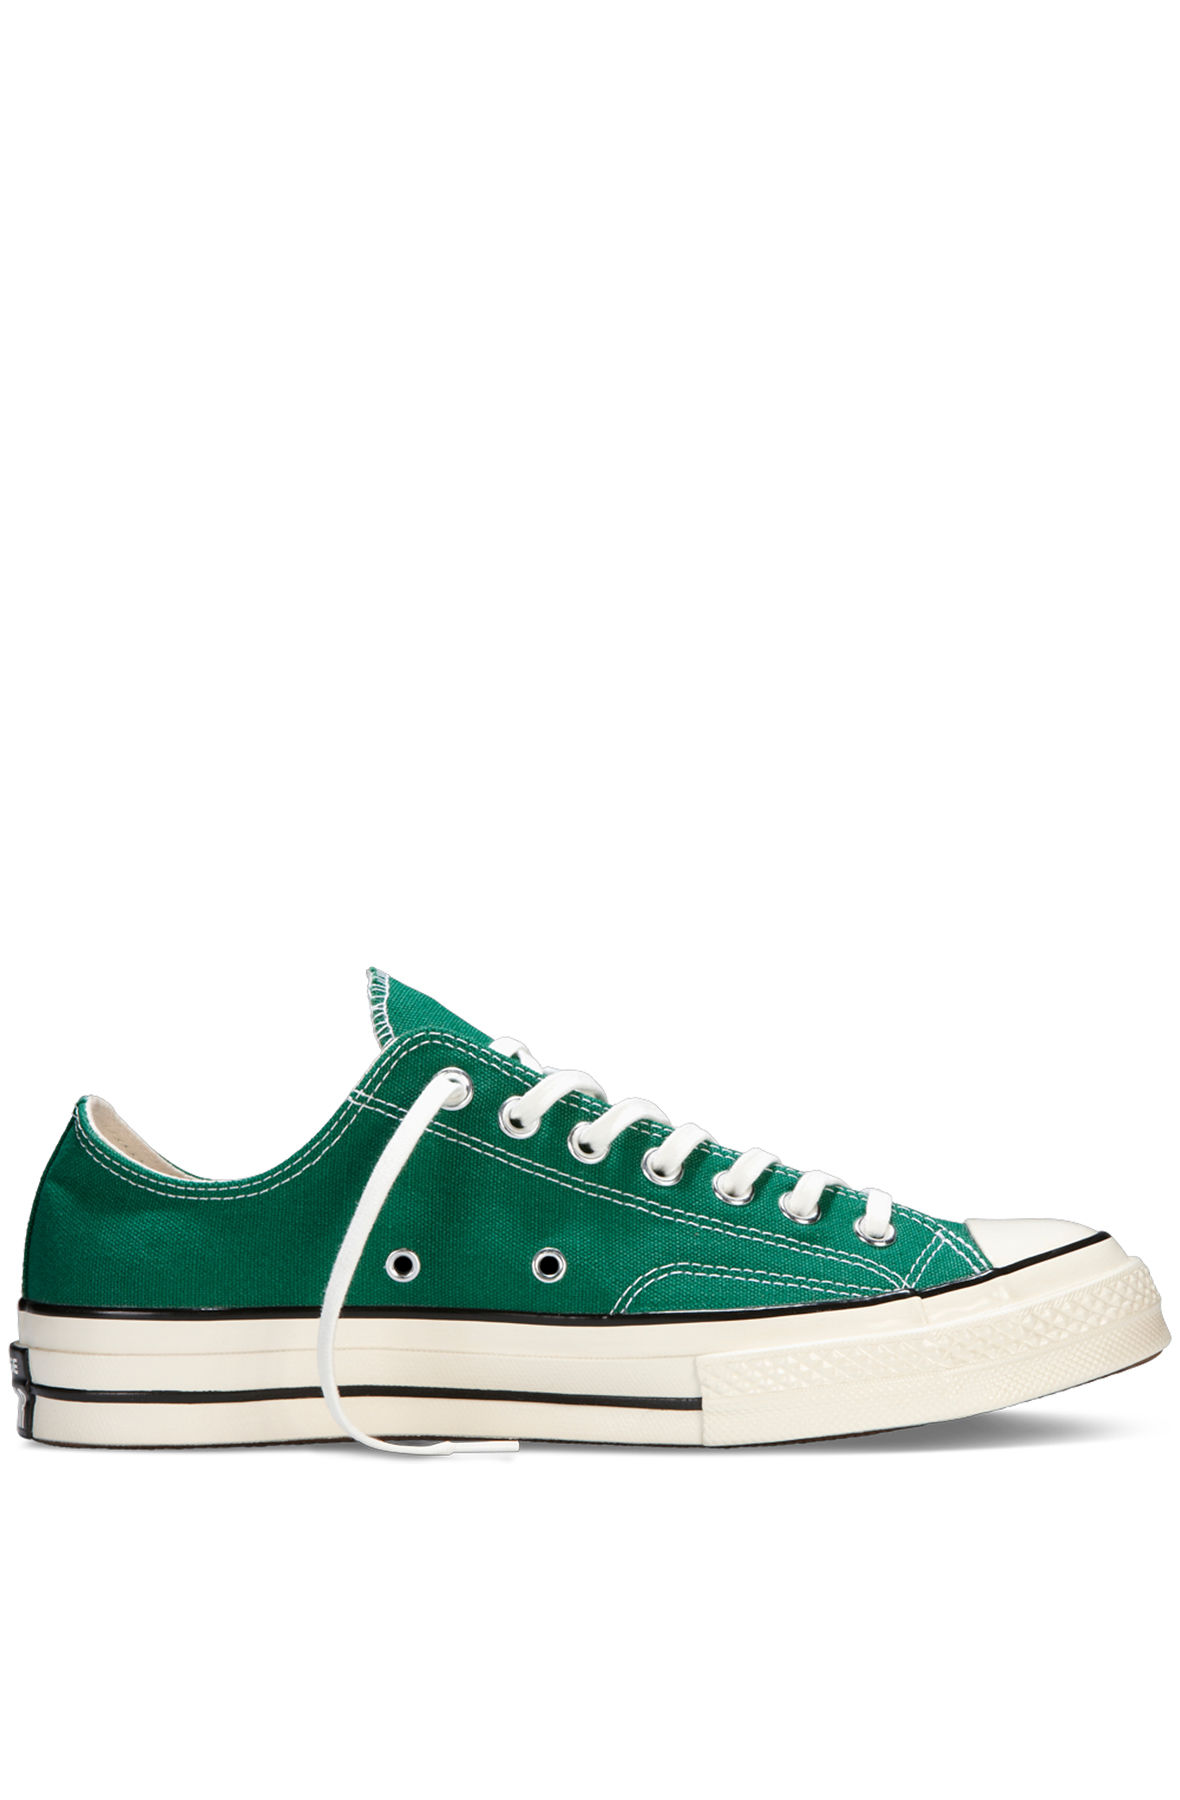 d05c31dc754ea The Chuck Taylor All Star '70's Ox Sneaker in Amazon